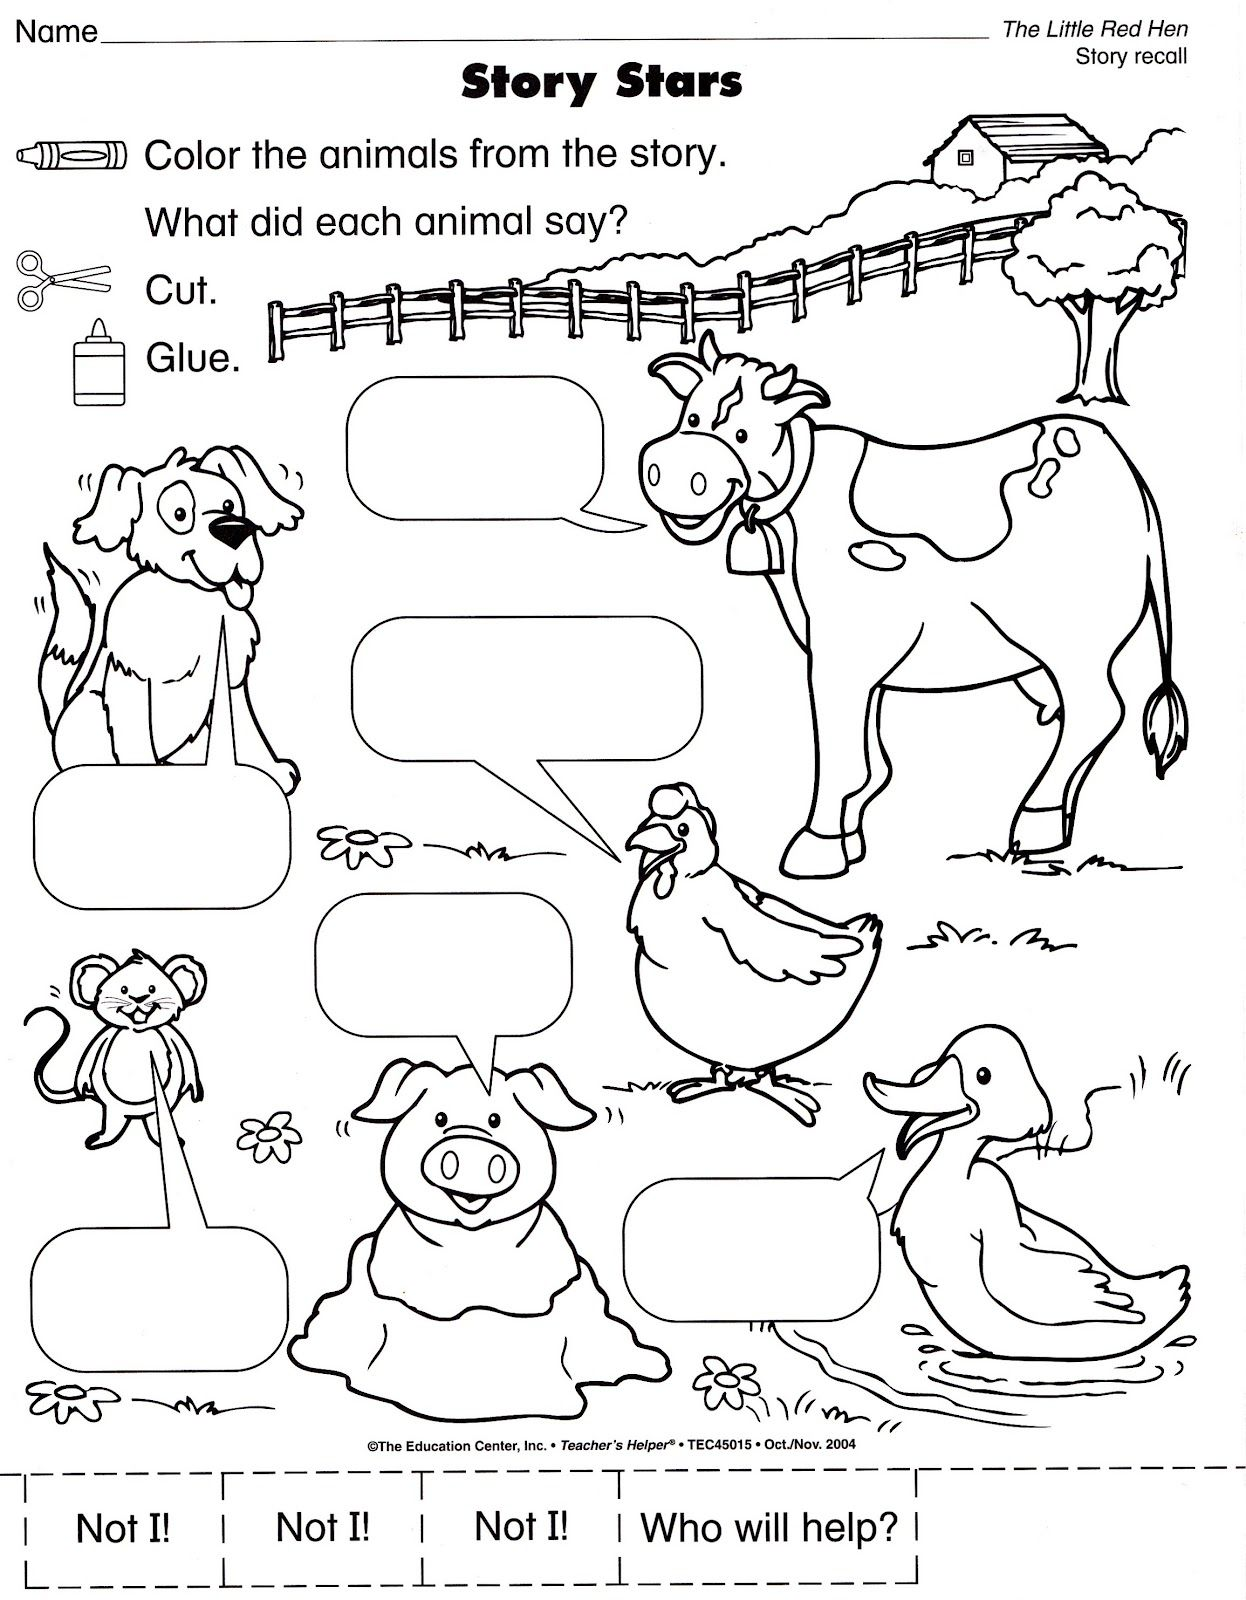 Free Worksheet Little Red Hen Worksheets squish preschool ideas cows sheep horses oh my farm sheep